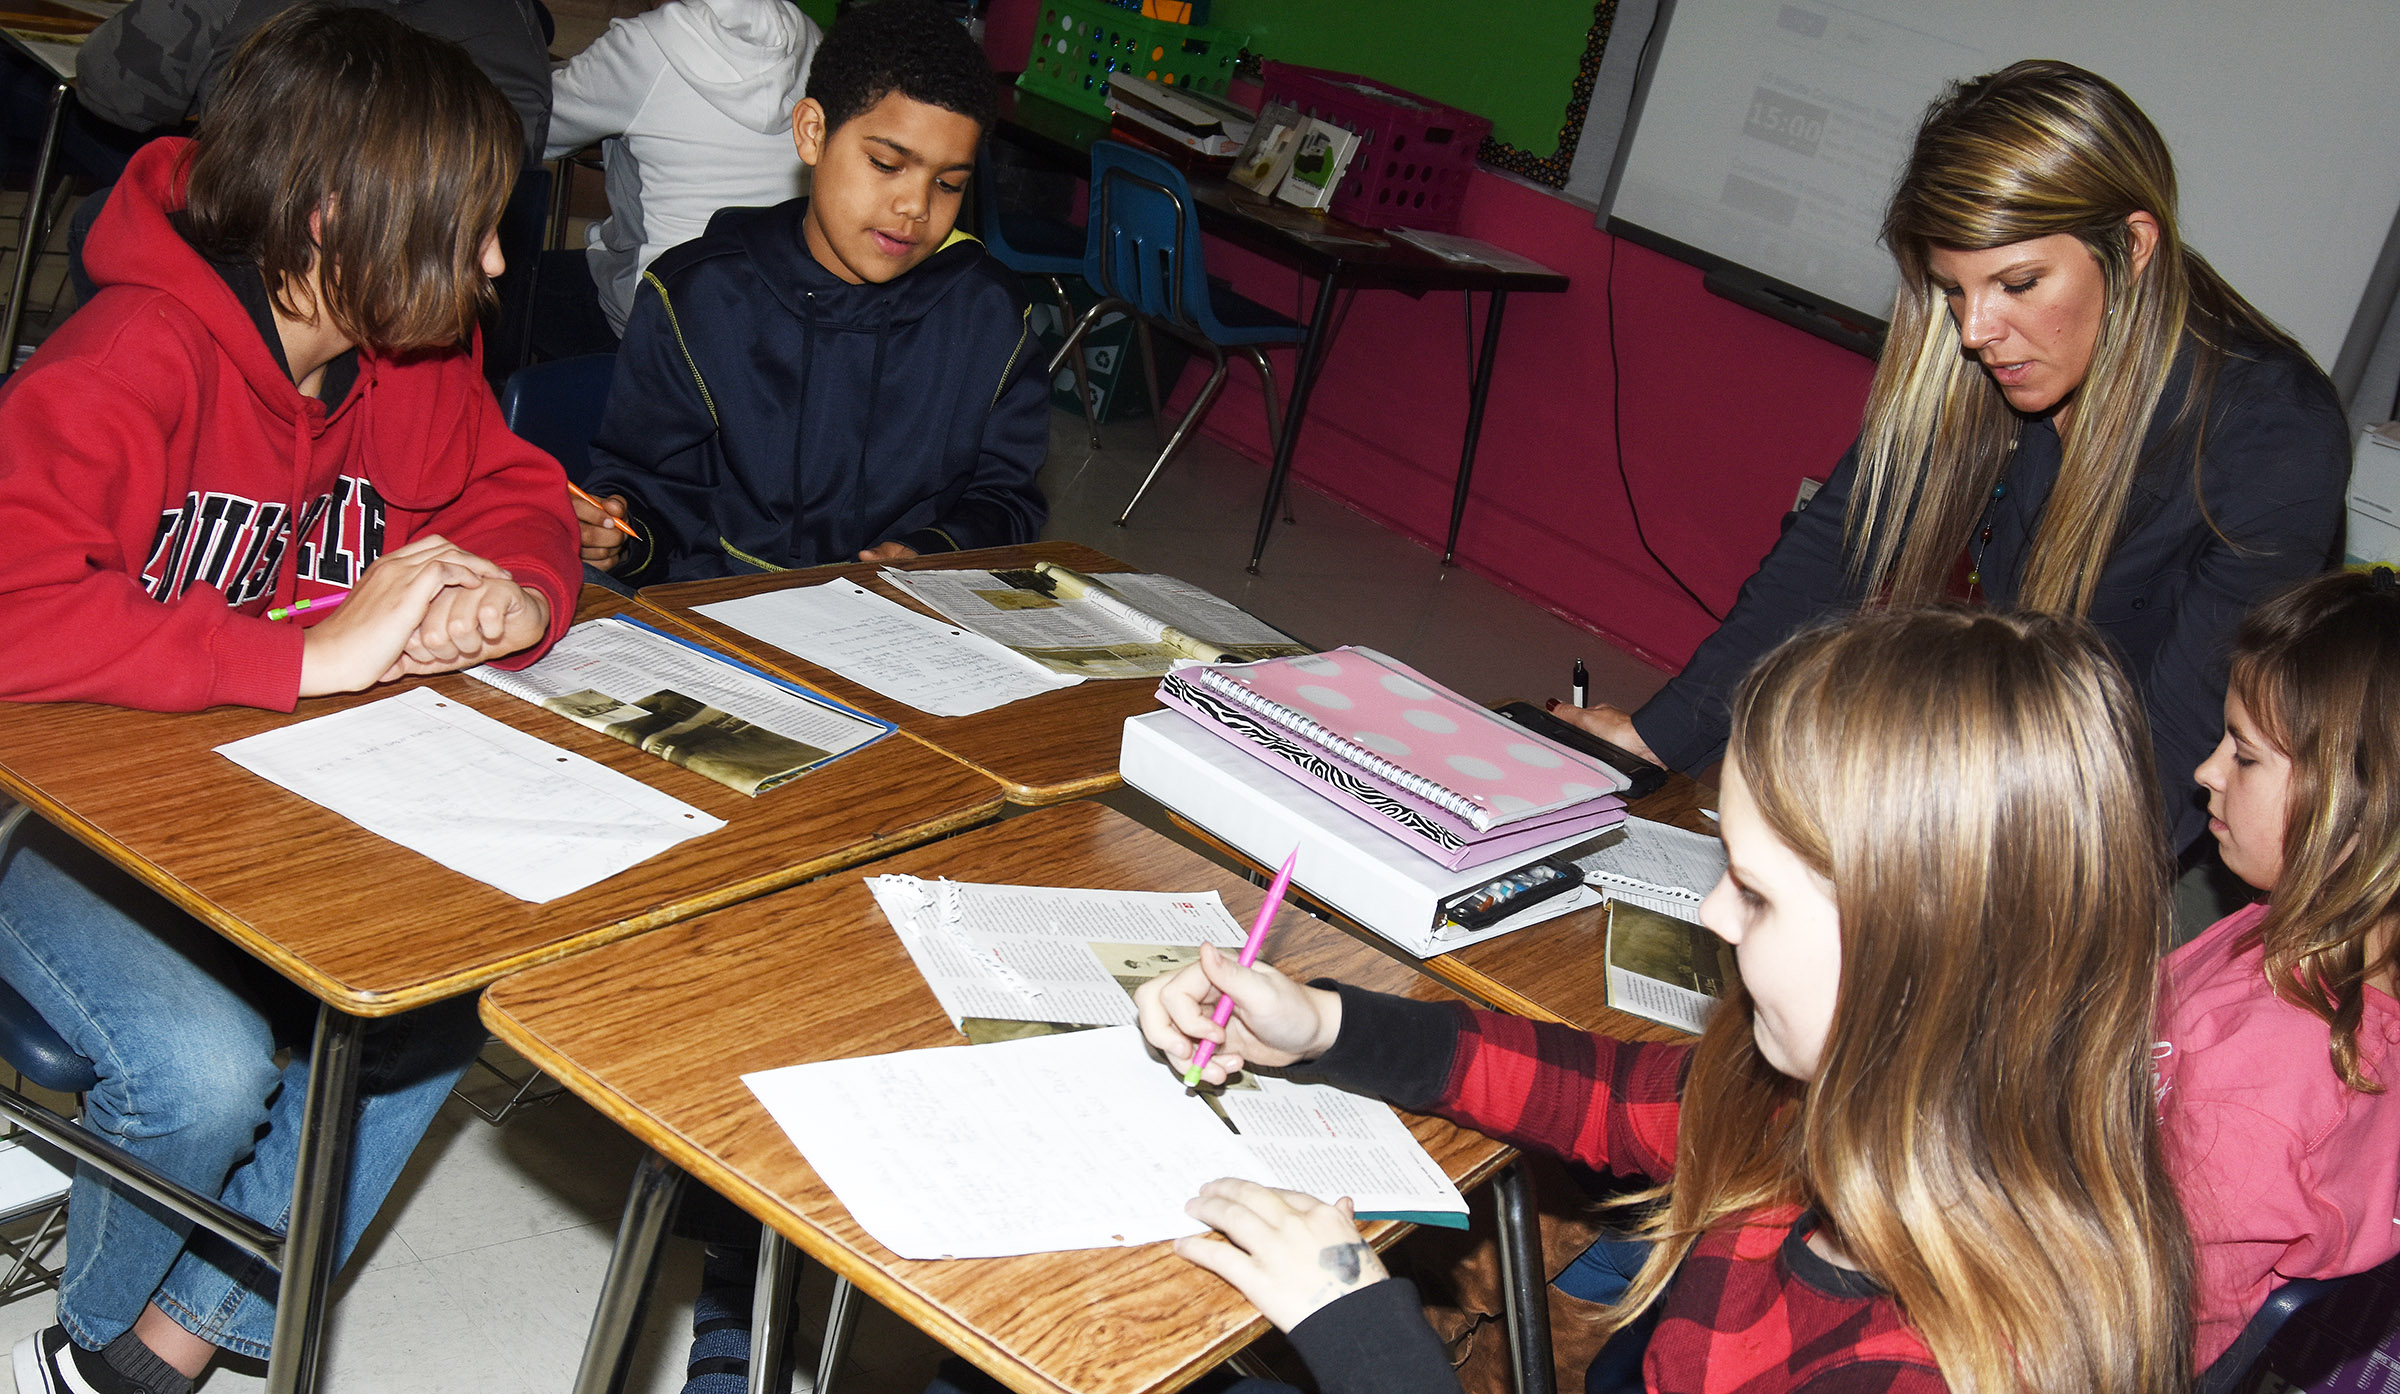 CMS teacher Andrea Gribbins talks with, from left, sixth-graders Ethan Taylor, Tashaun Hart, Mallory Parker and Aryanna Britton about how to find details in a story that support the main idea.